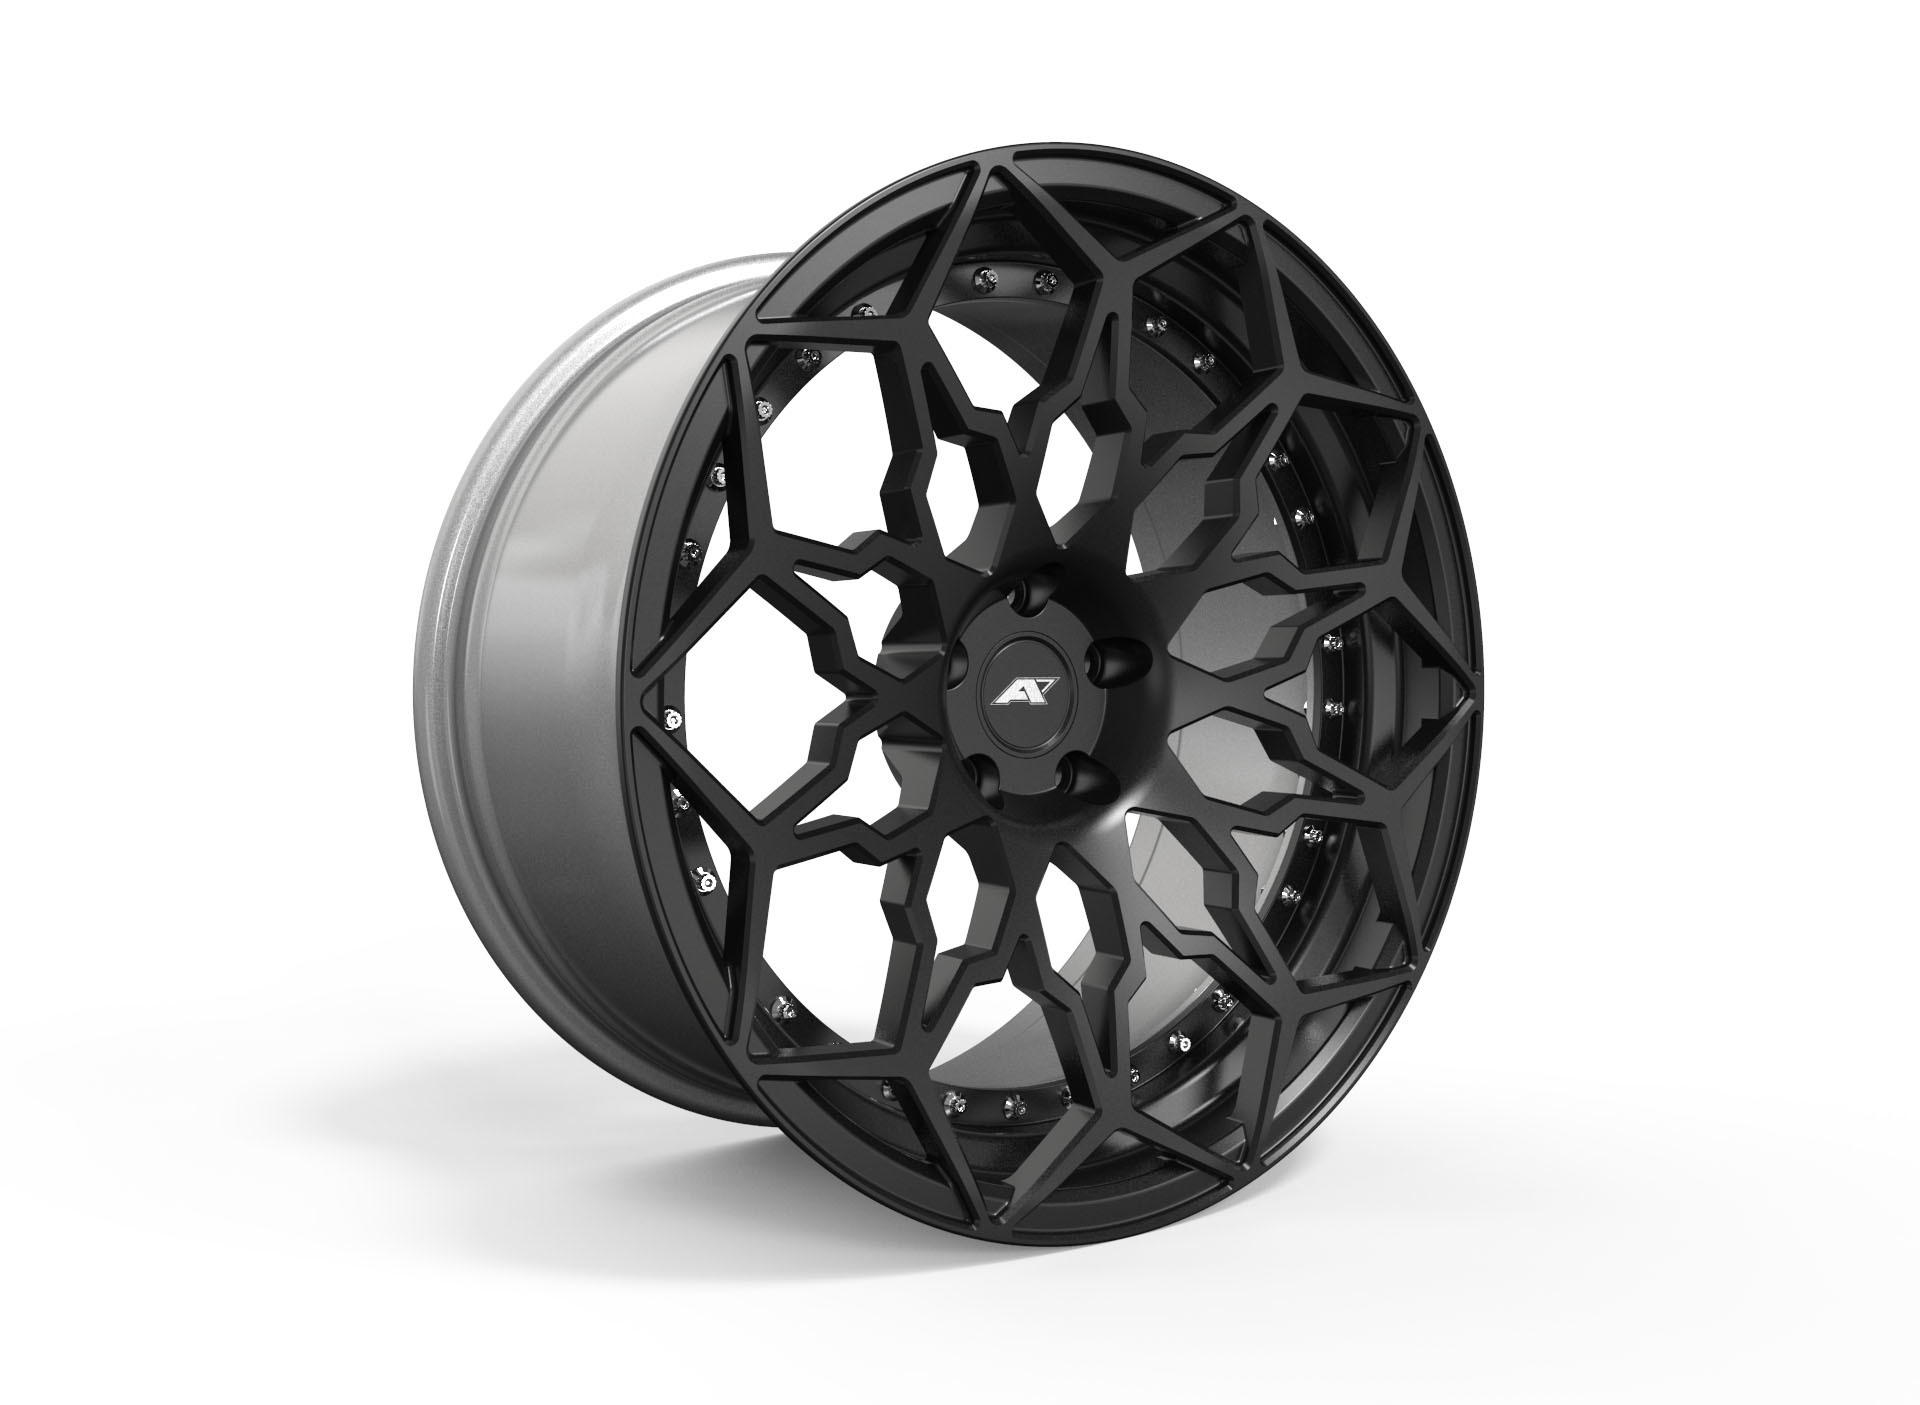 AMP Forged Wheels AMP 1010 -2P